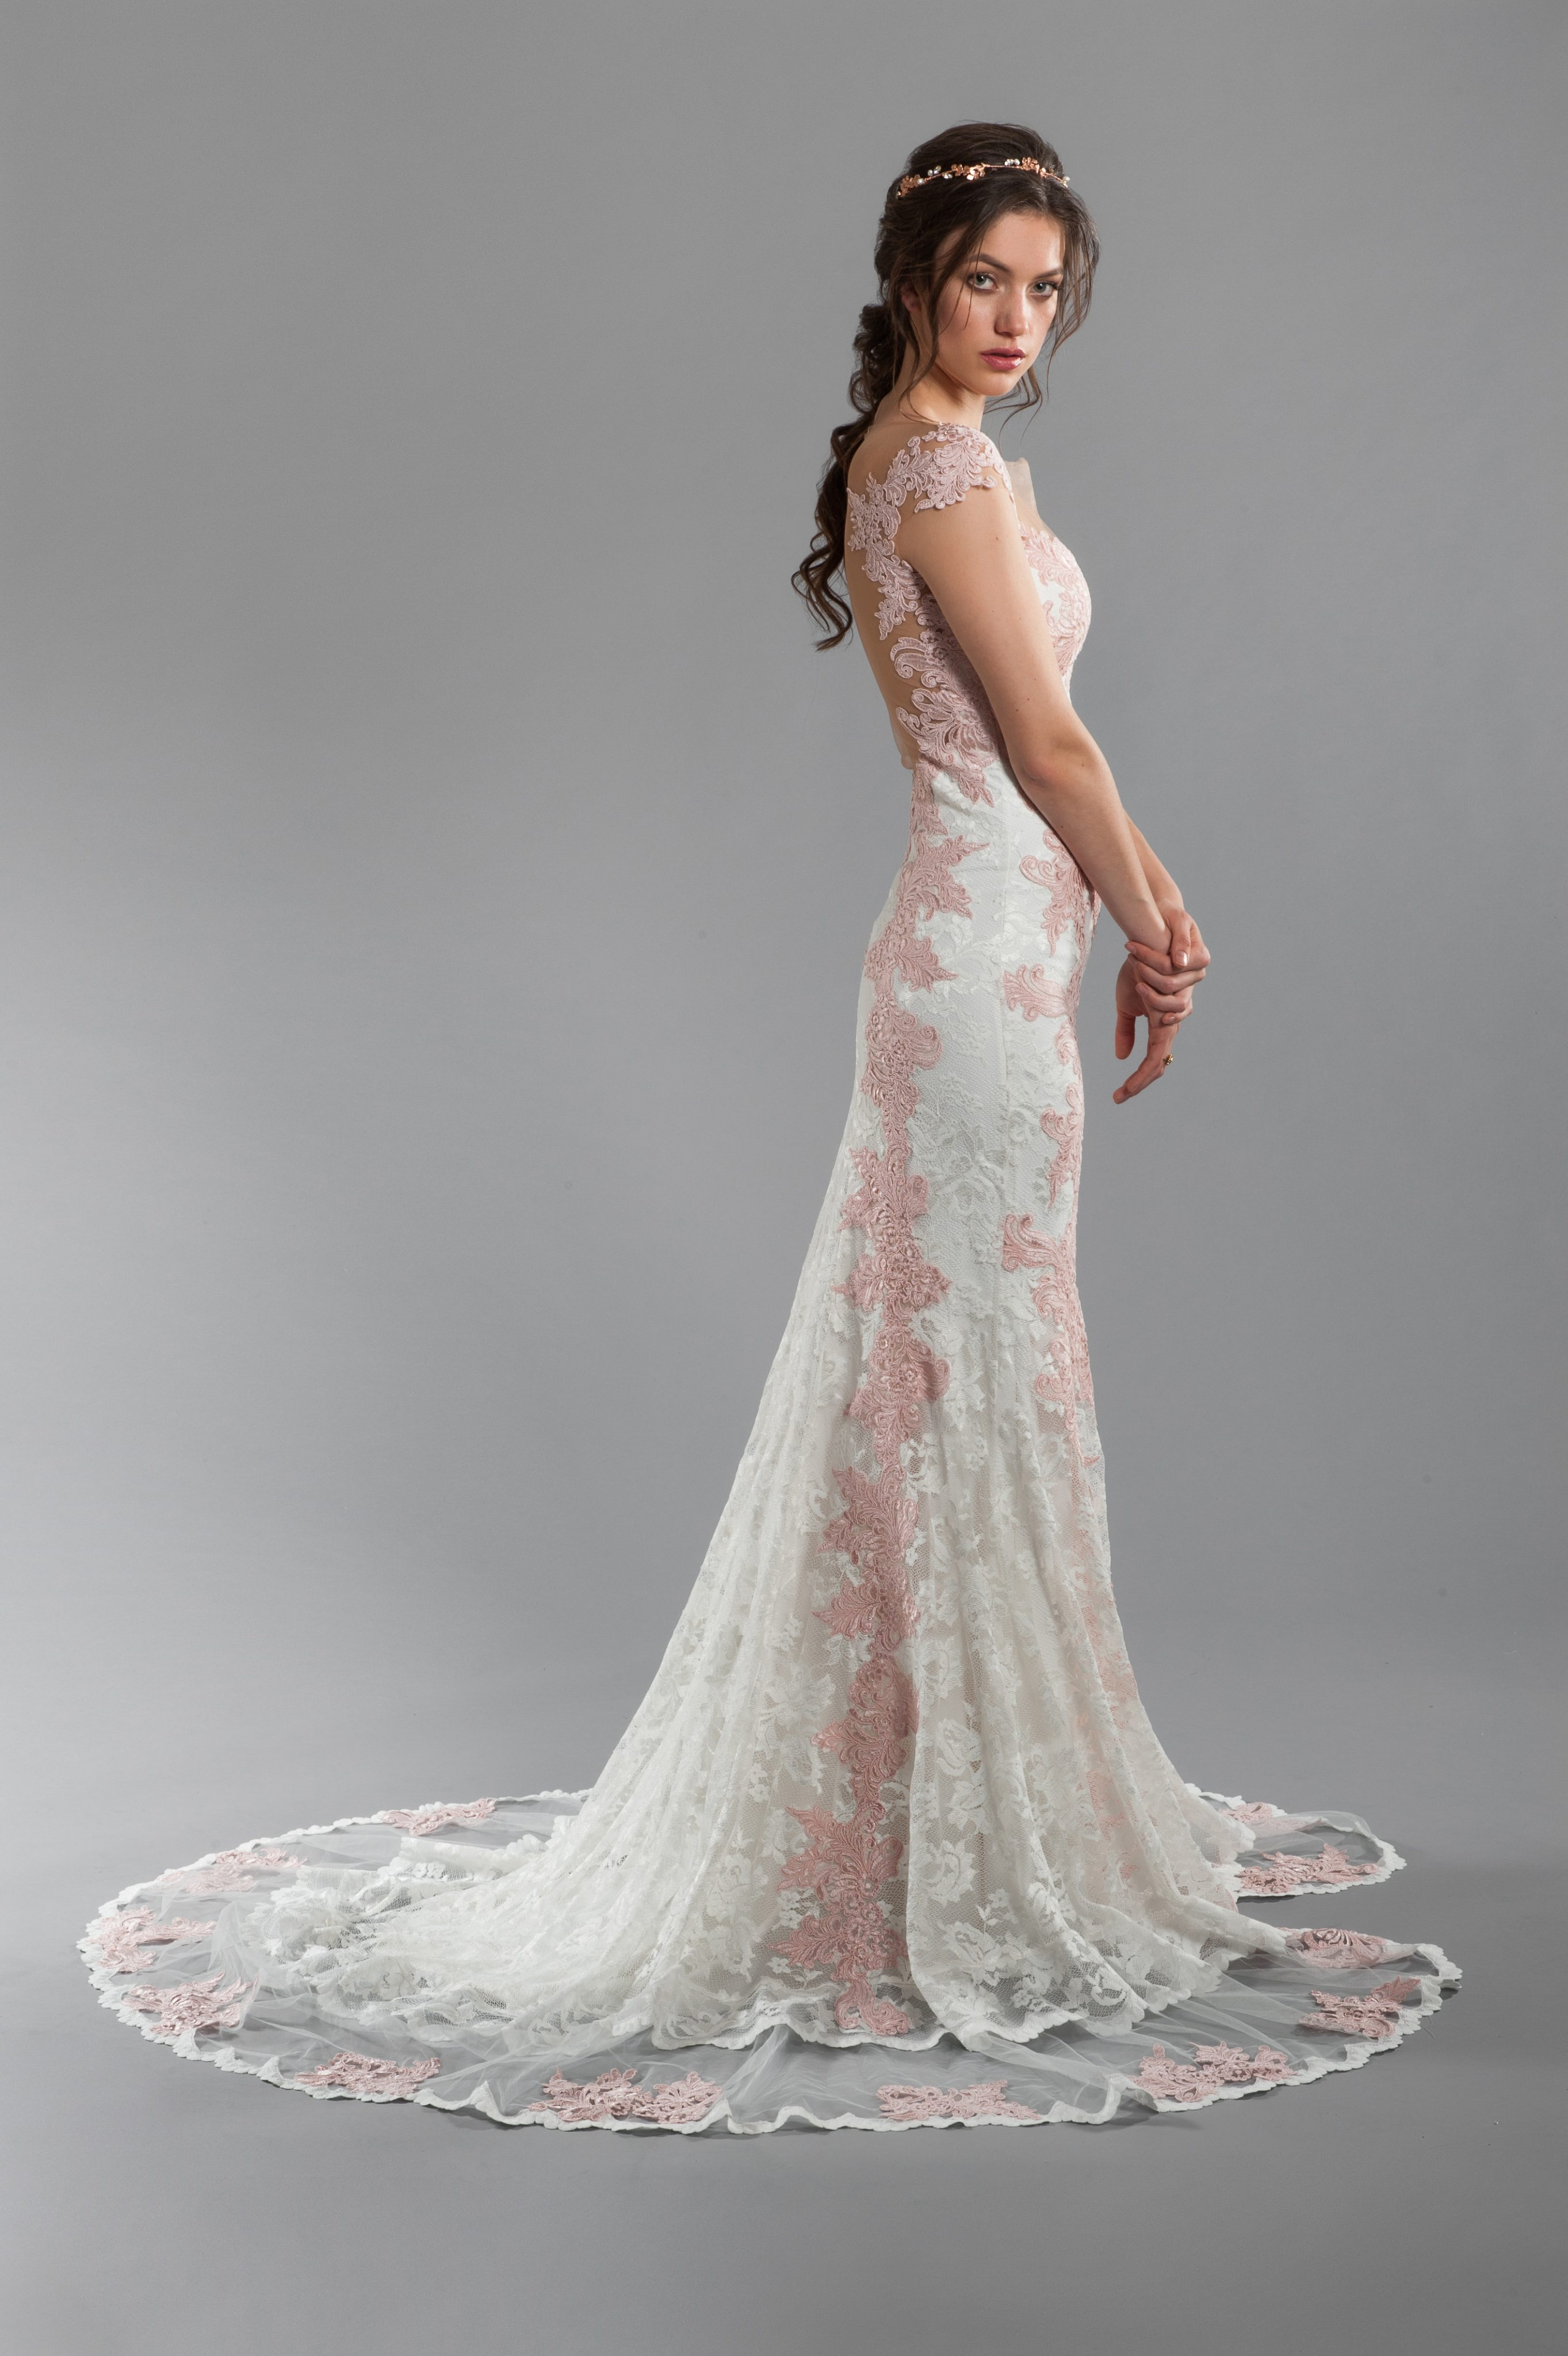 Rose And Ivory Lace Sheath Wedding Dress With Illusion Back Sweetheart Neckline Cap Sleeves Kleinfeld Bridal